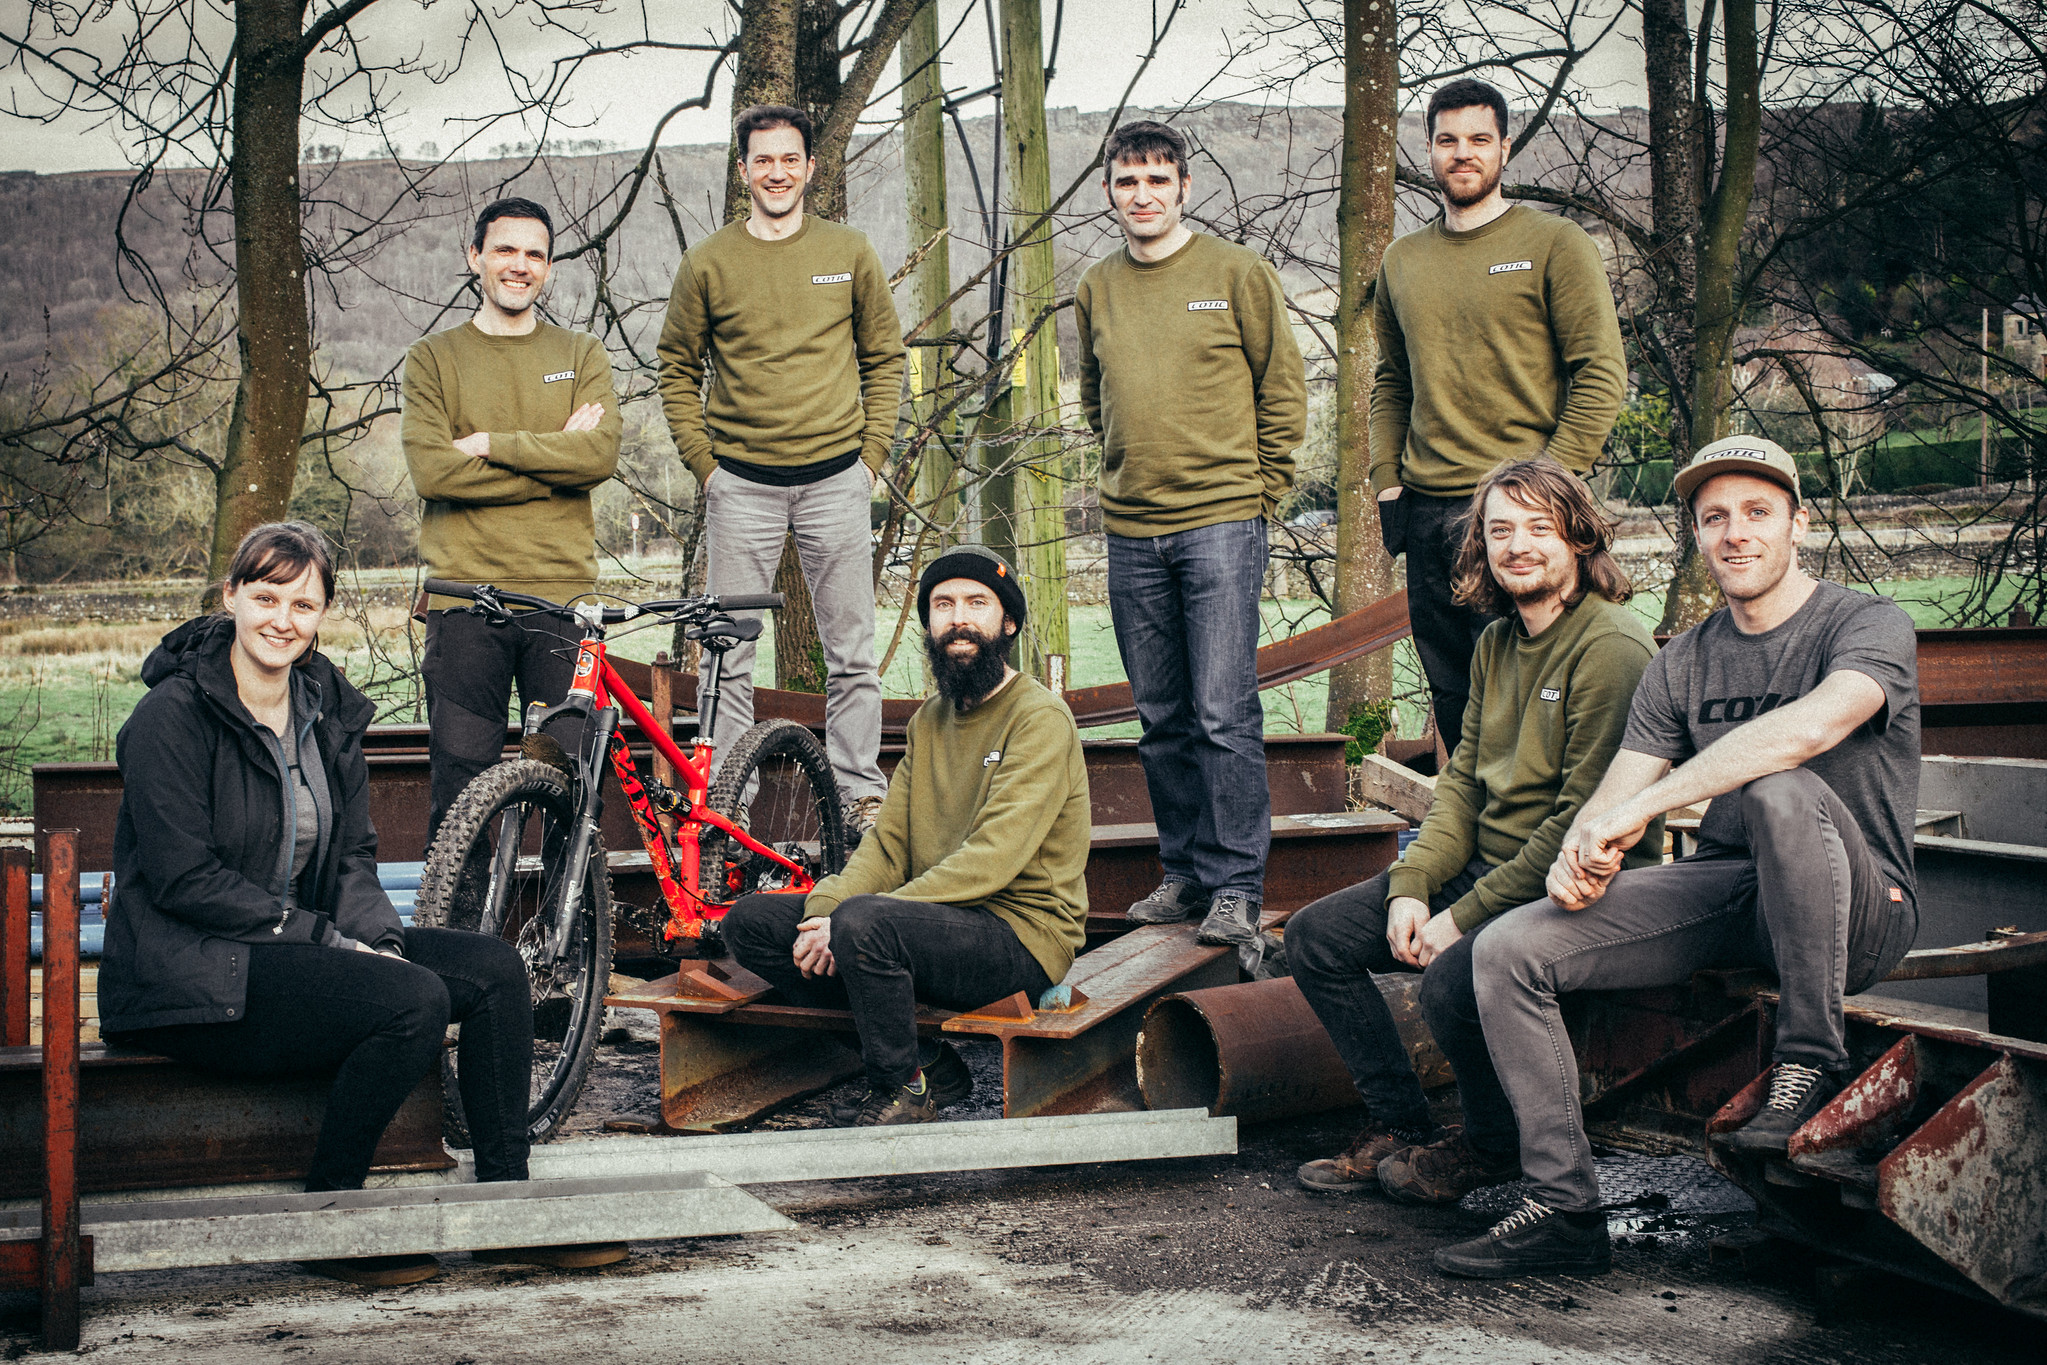 bike mechanic, cotic staff photo, work for cotic, uk made